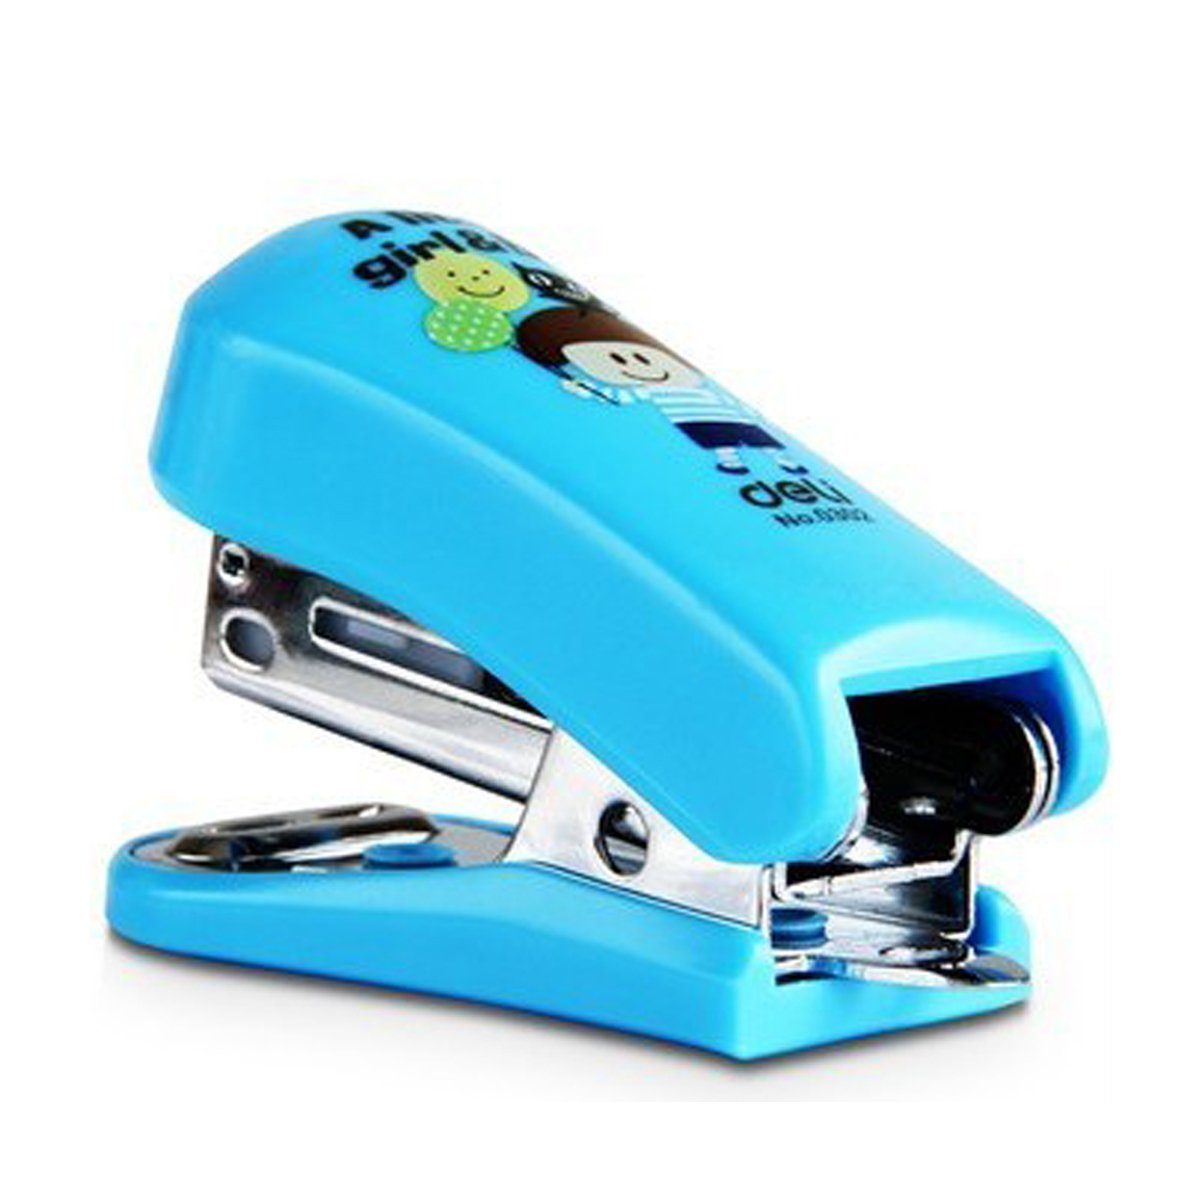 BXT Mini Potable Stapler with Built-in Staple Remover, 12 Sheets Capacity